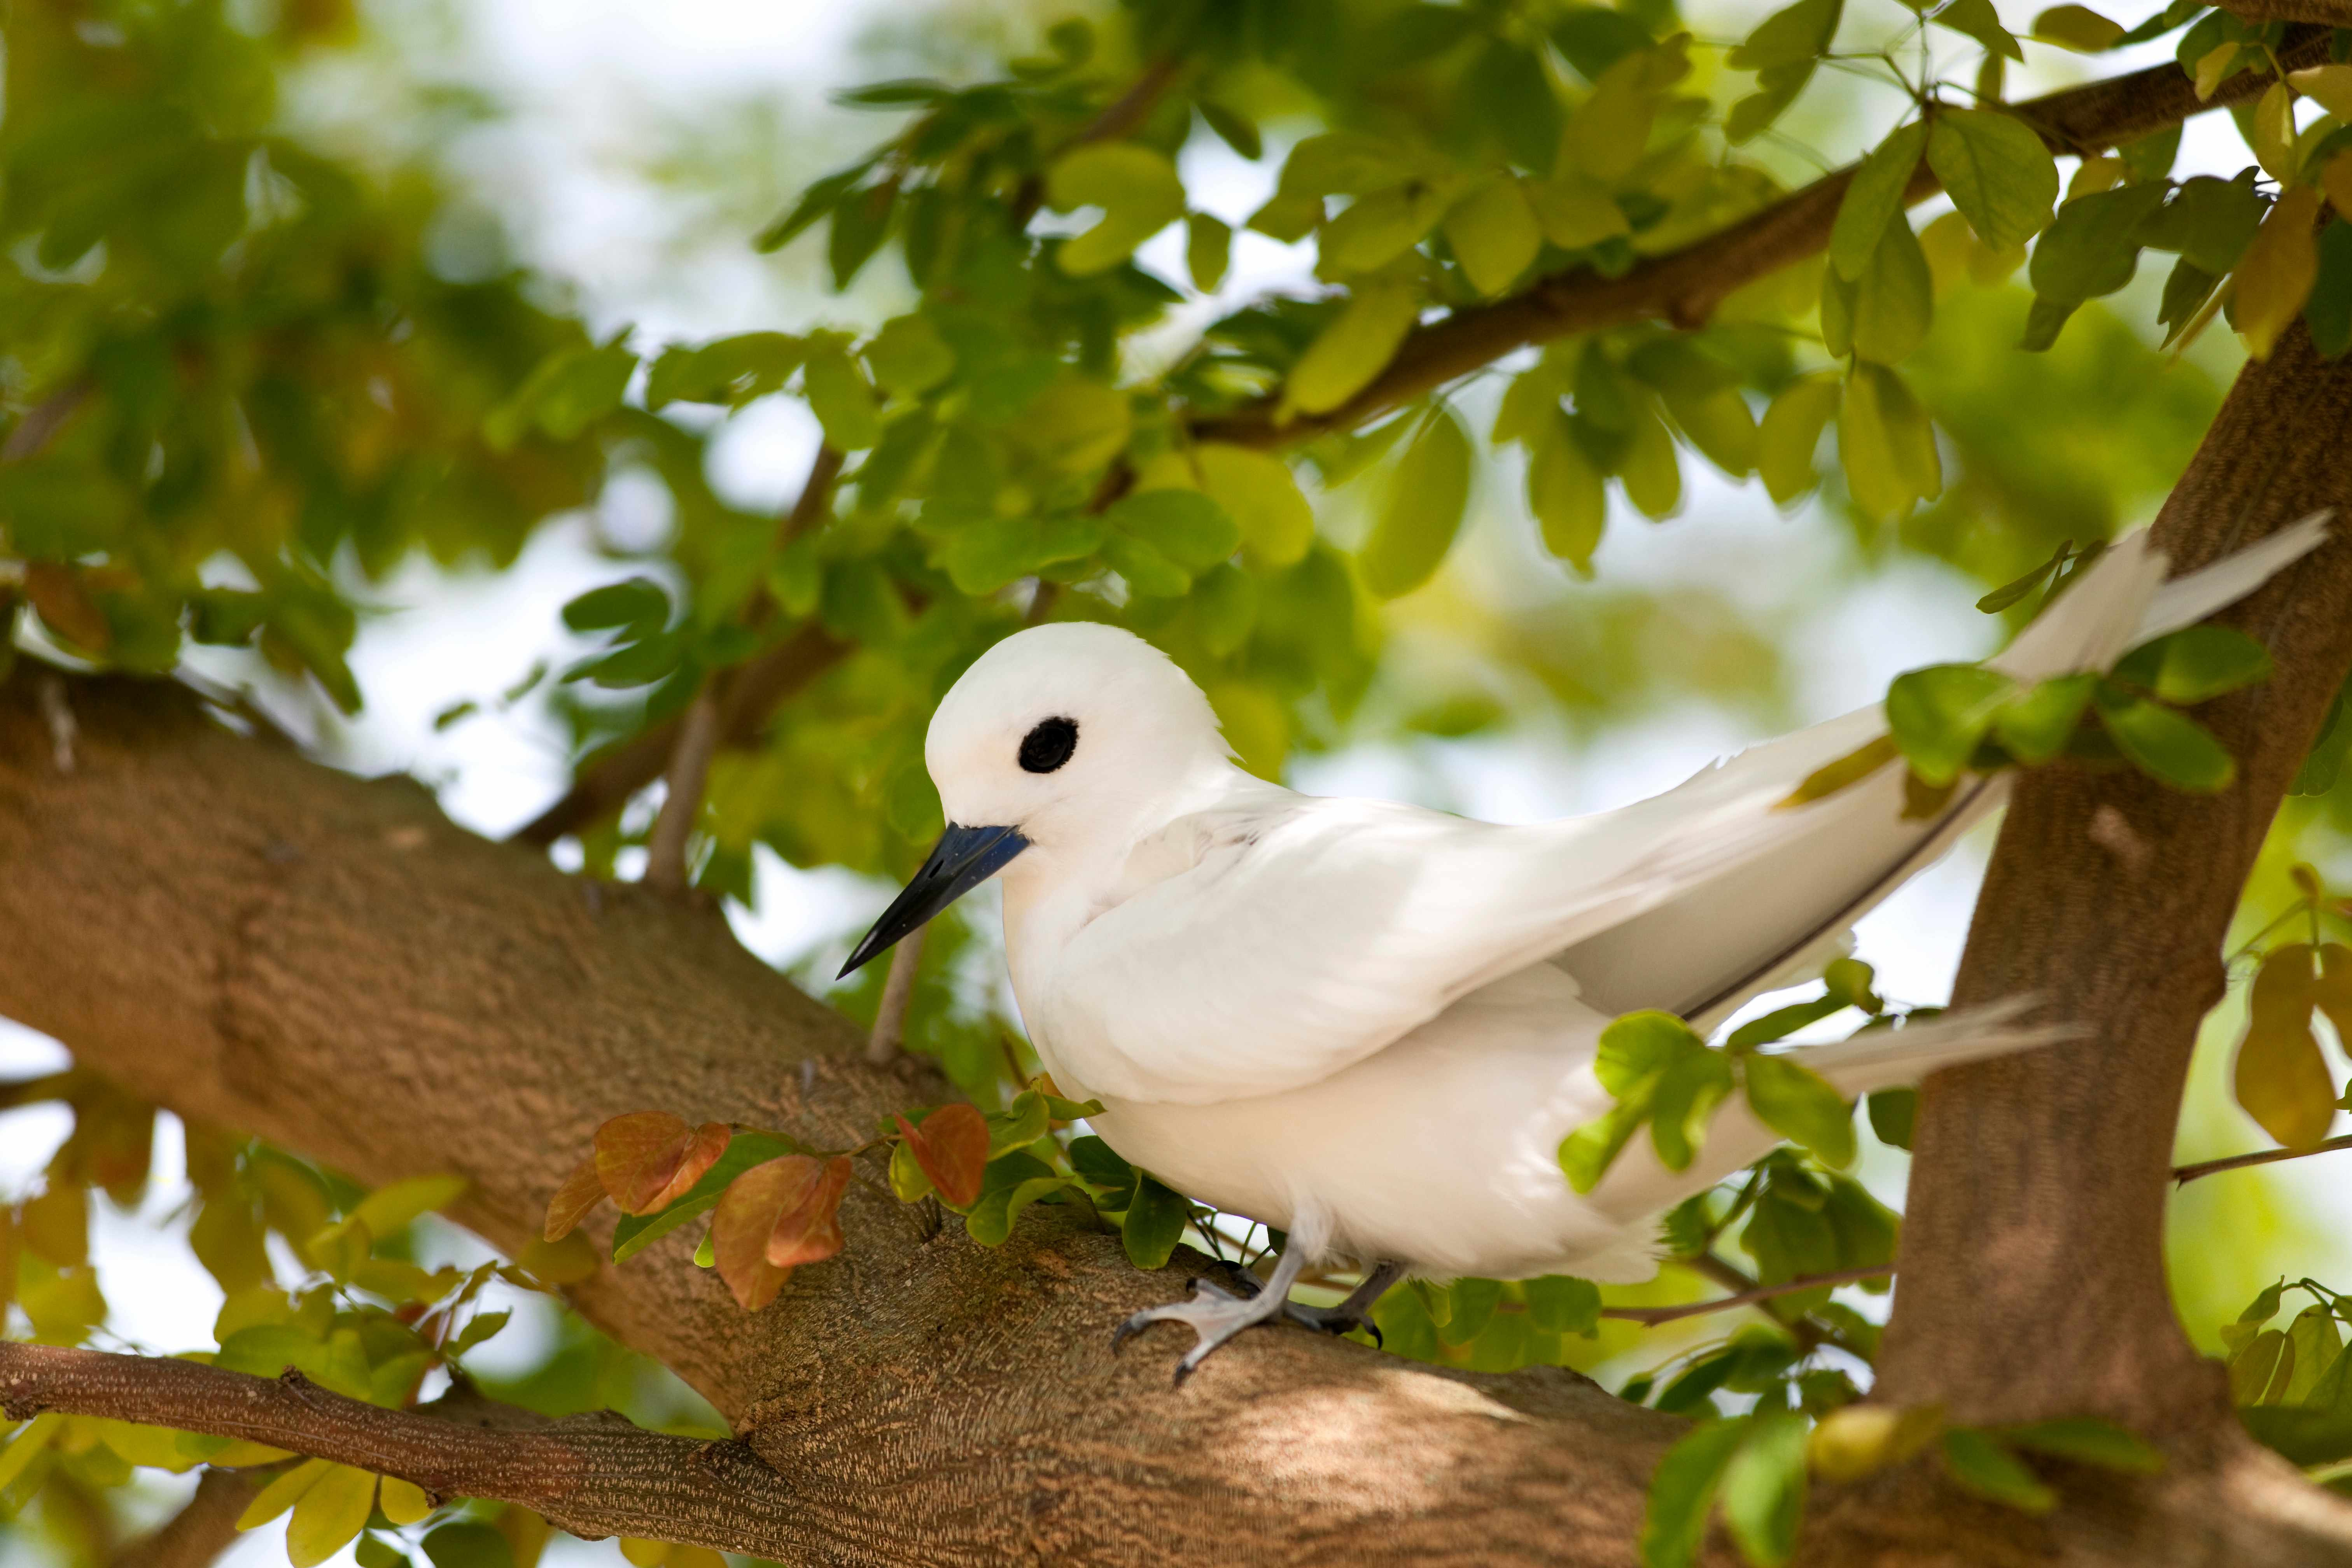 White tern on Midway Atoll in Hawaii. © Danita Delimont/Getty